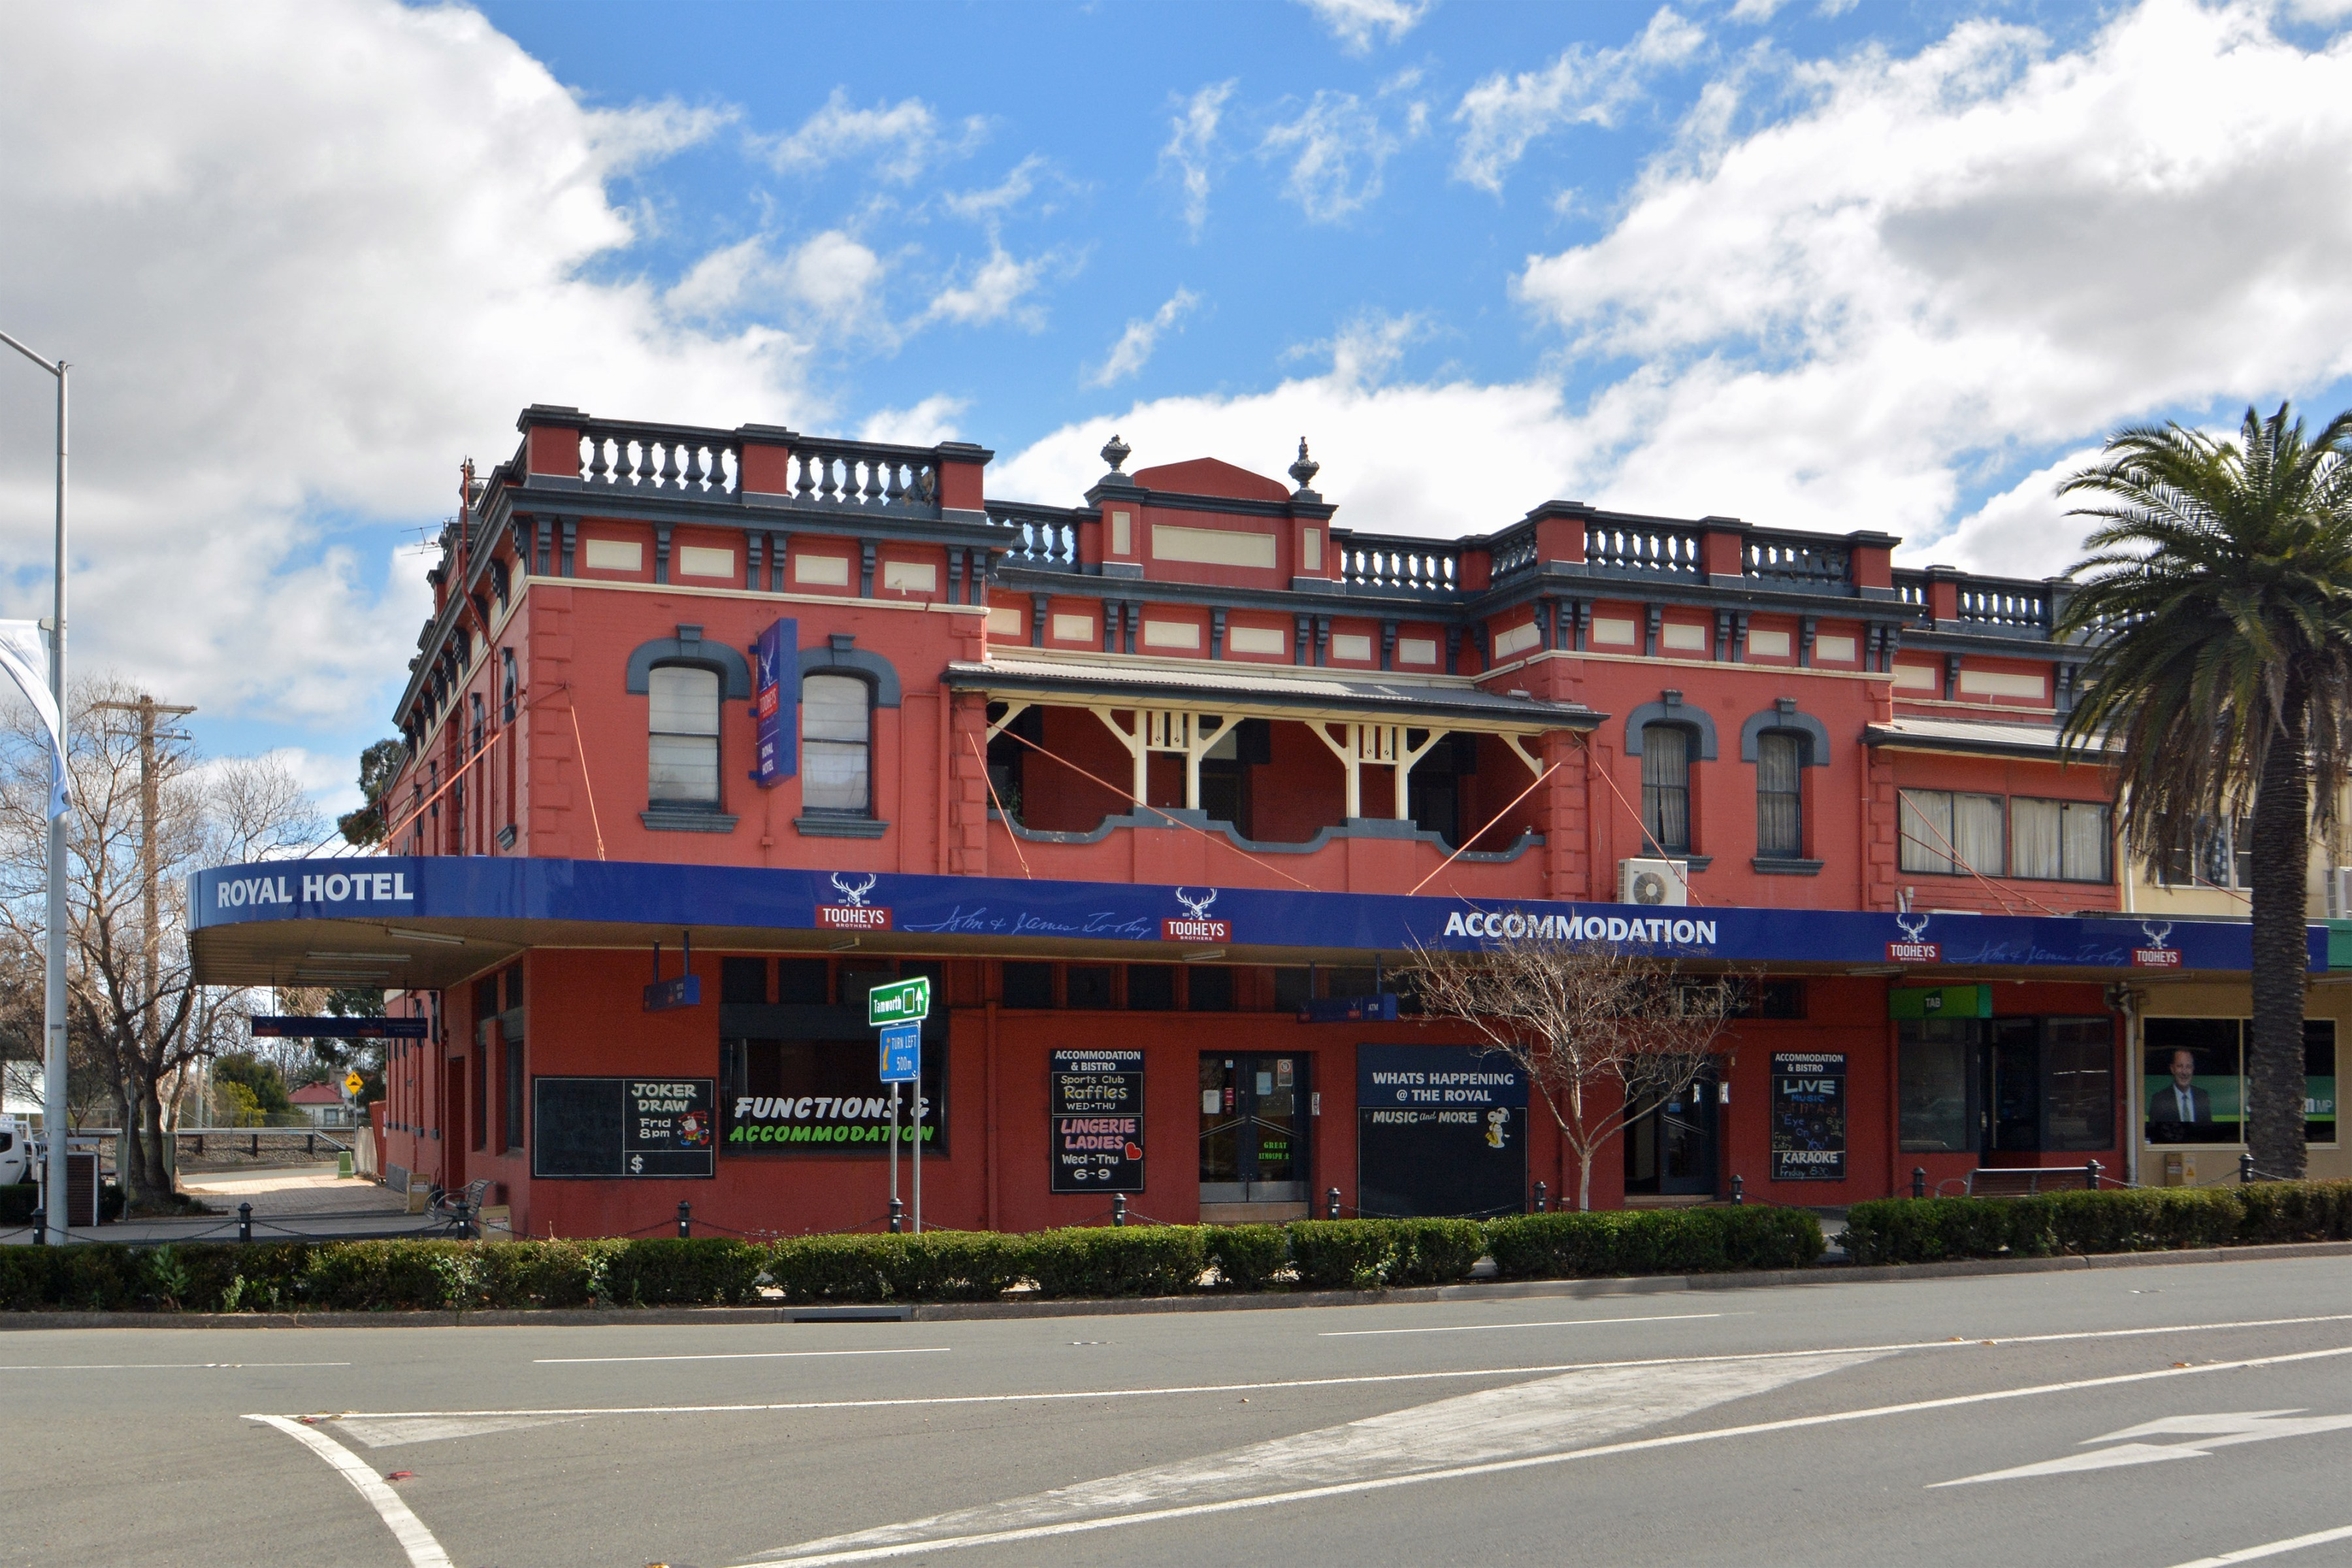 HOTEL FOR SALE - Royal Hotel, Muswellbrook